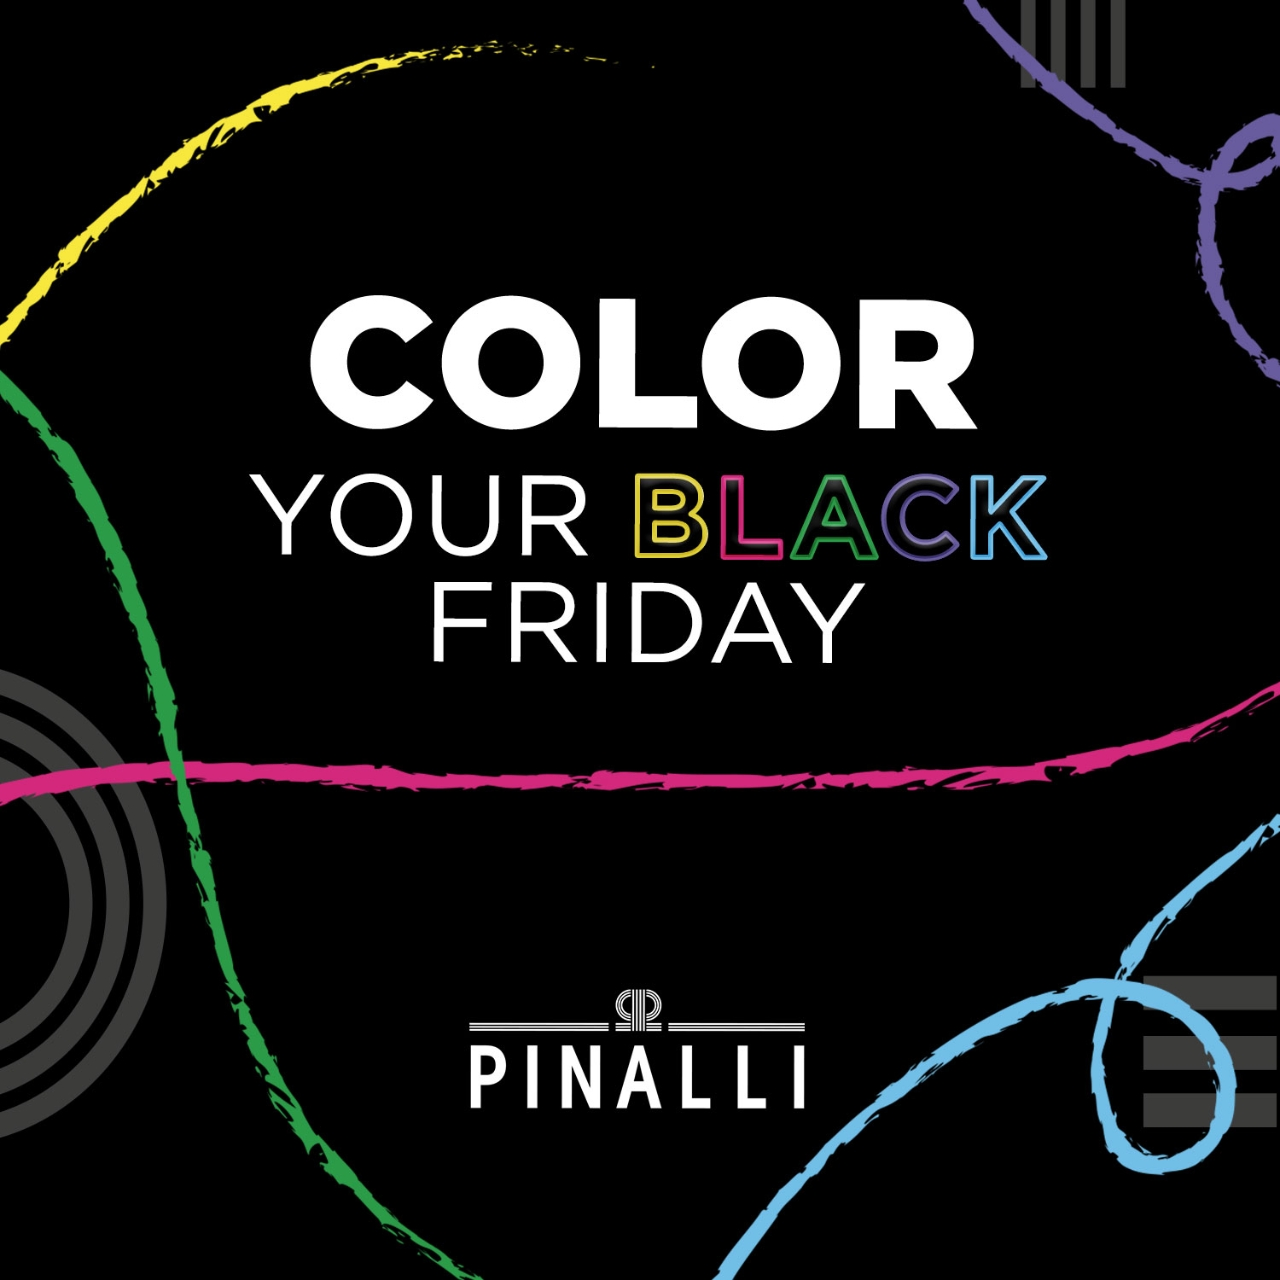 Pinalli Colour is the new black campaign